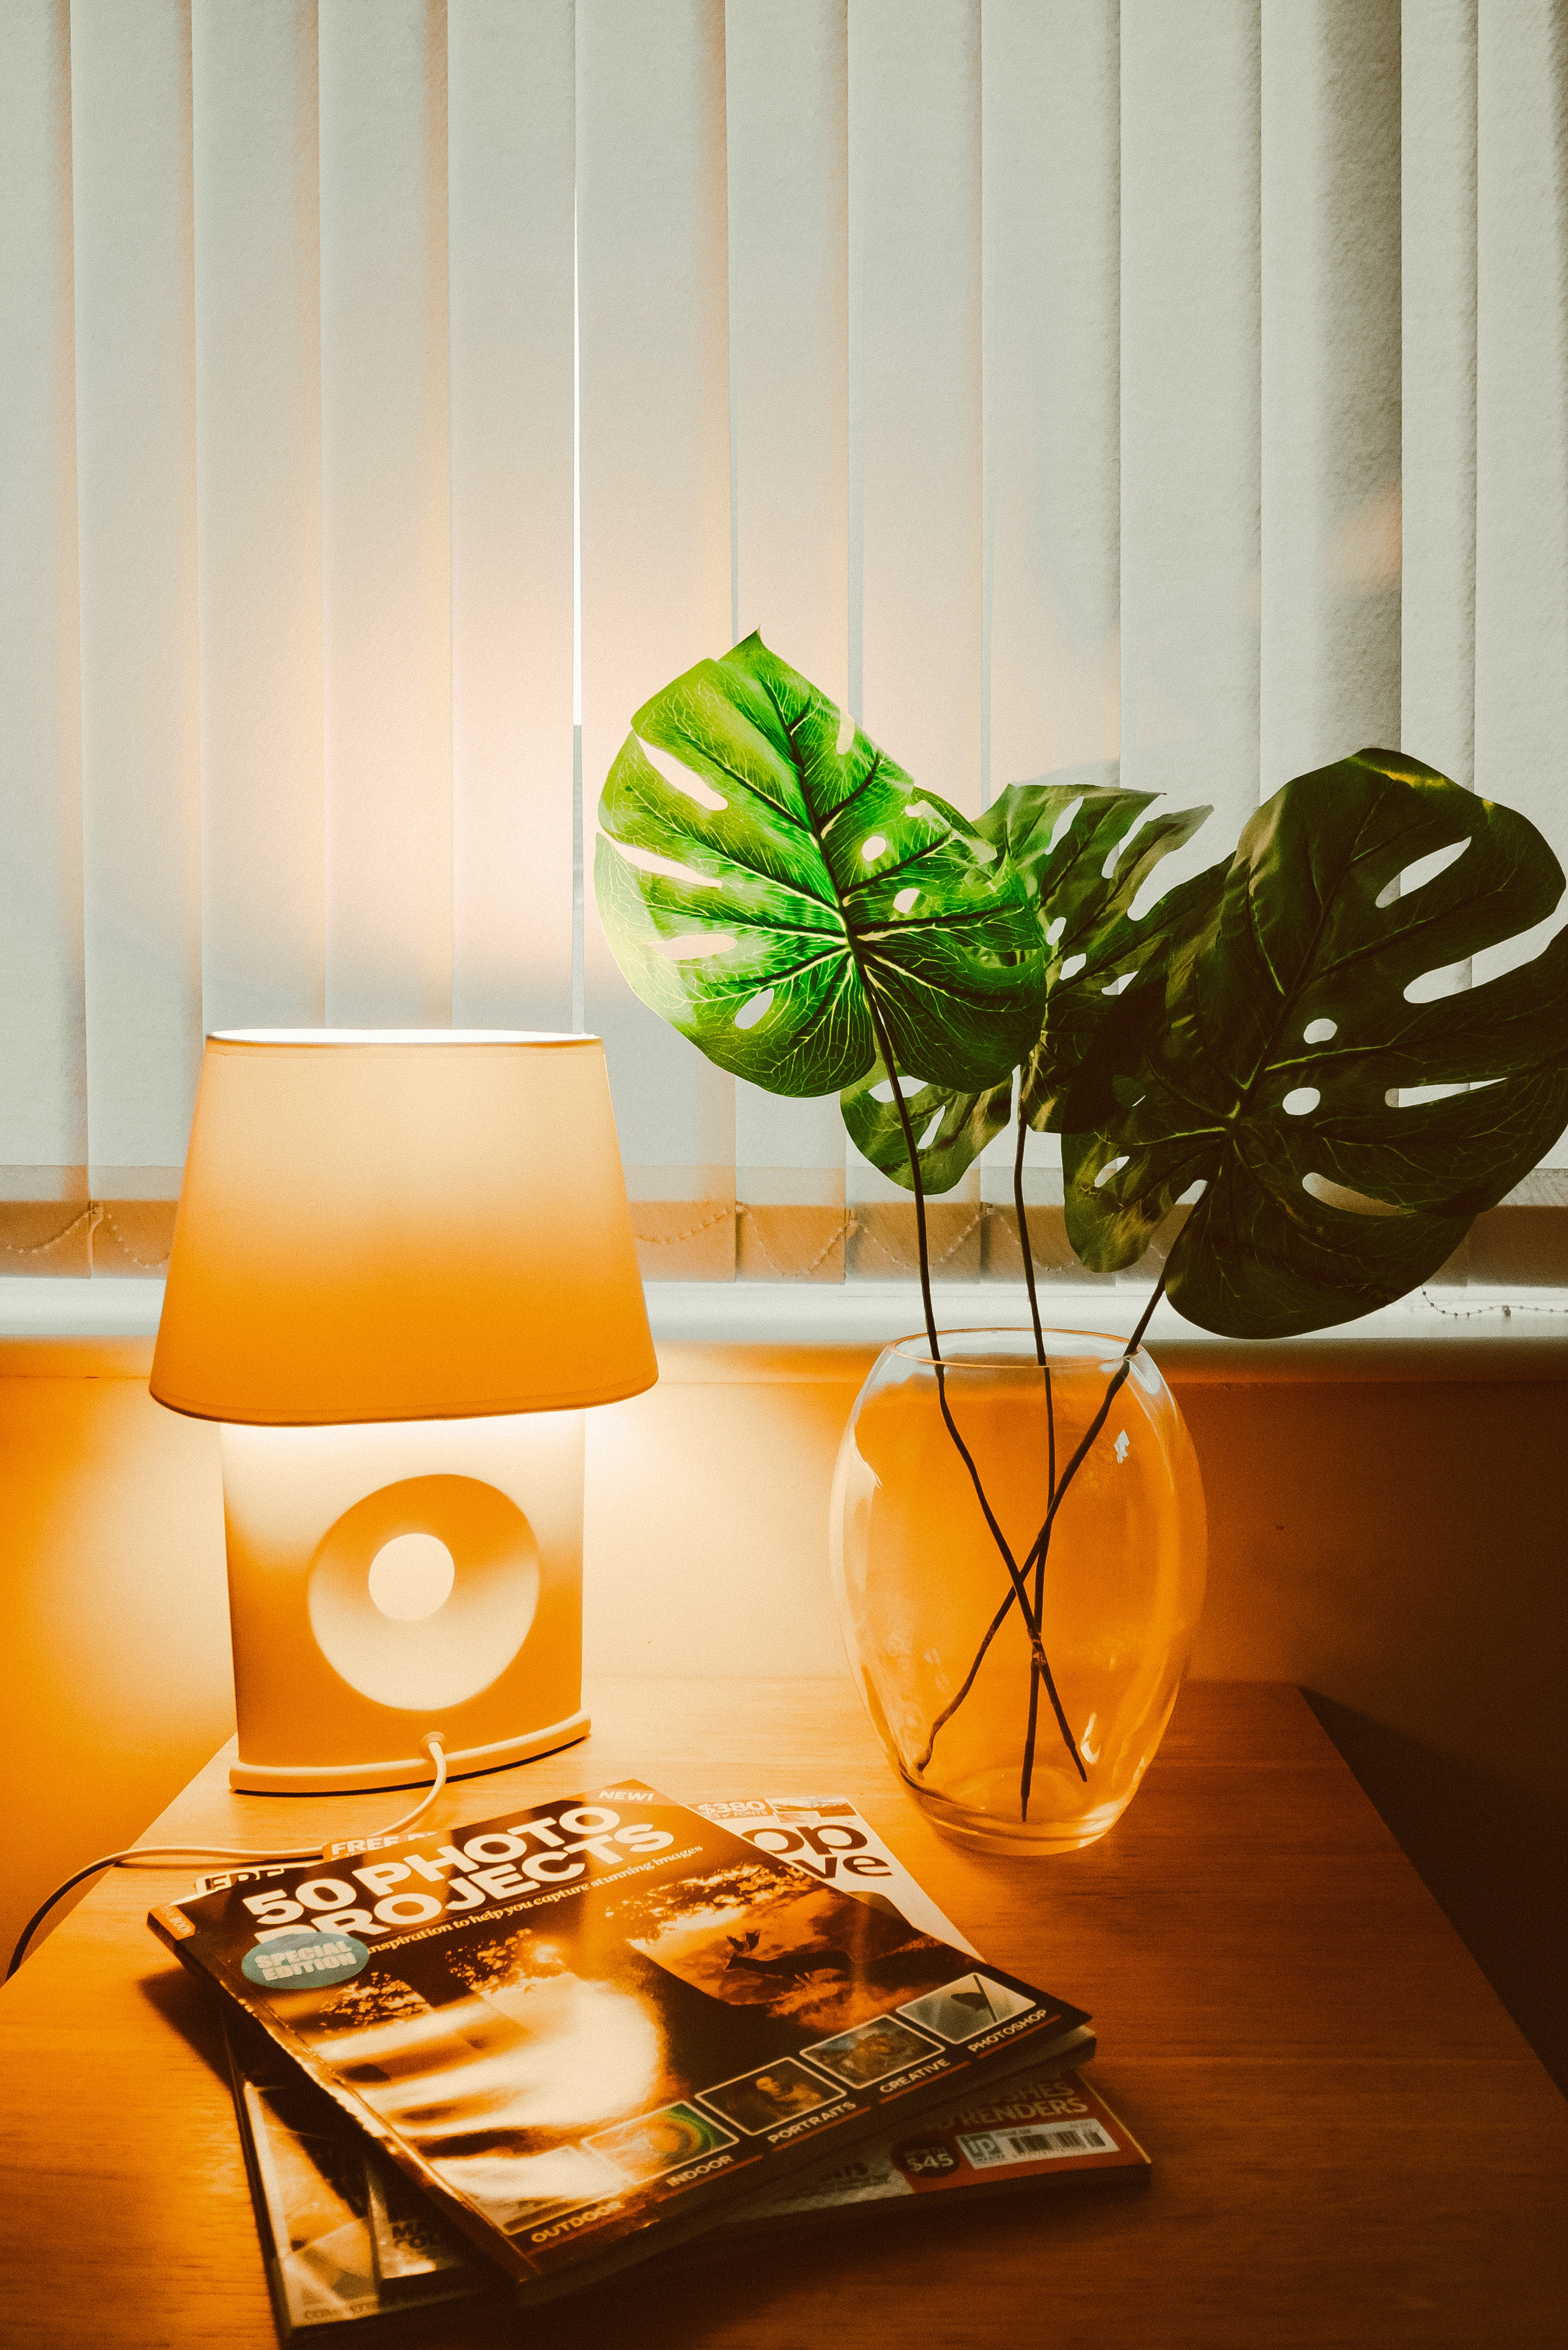 photo-of-plants-near-lampshade-1966747